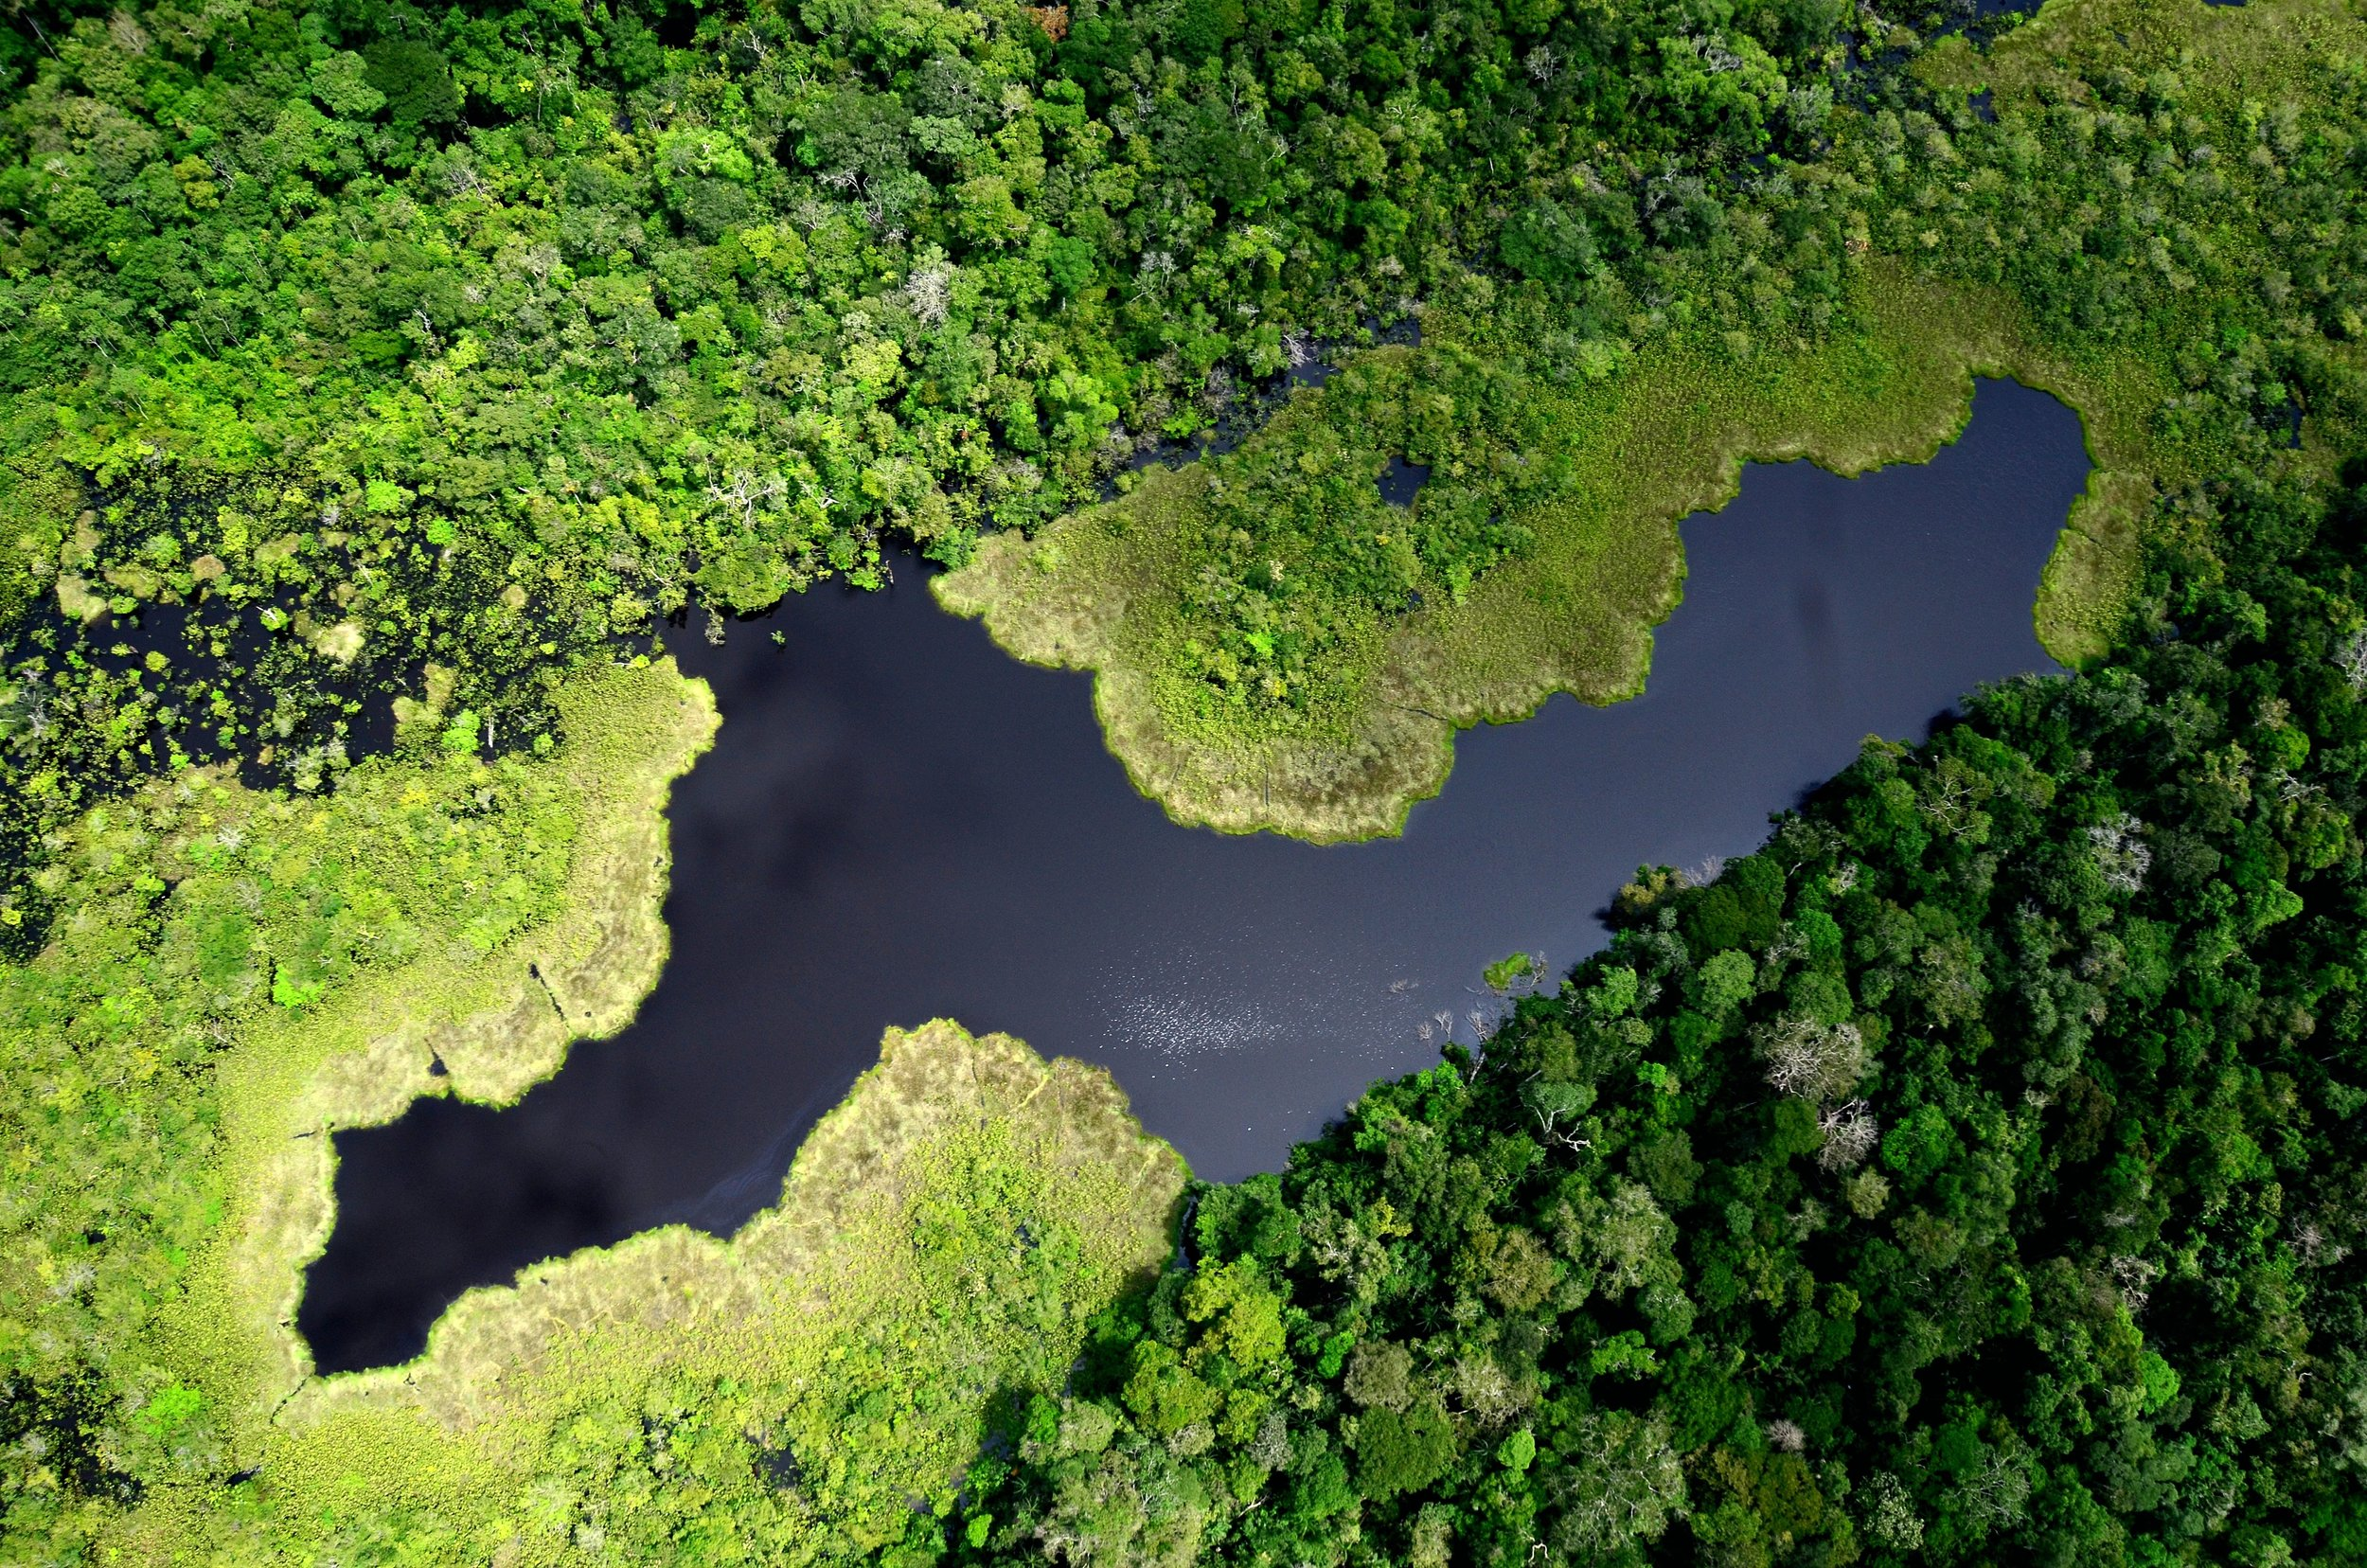 Yaguas National Park is one of the protected areas that the PdP will support.